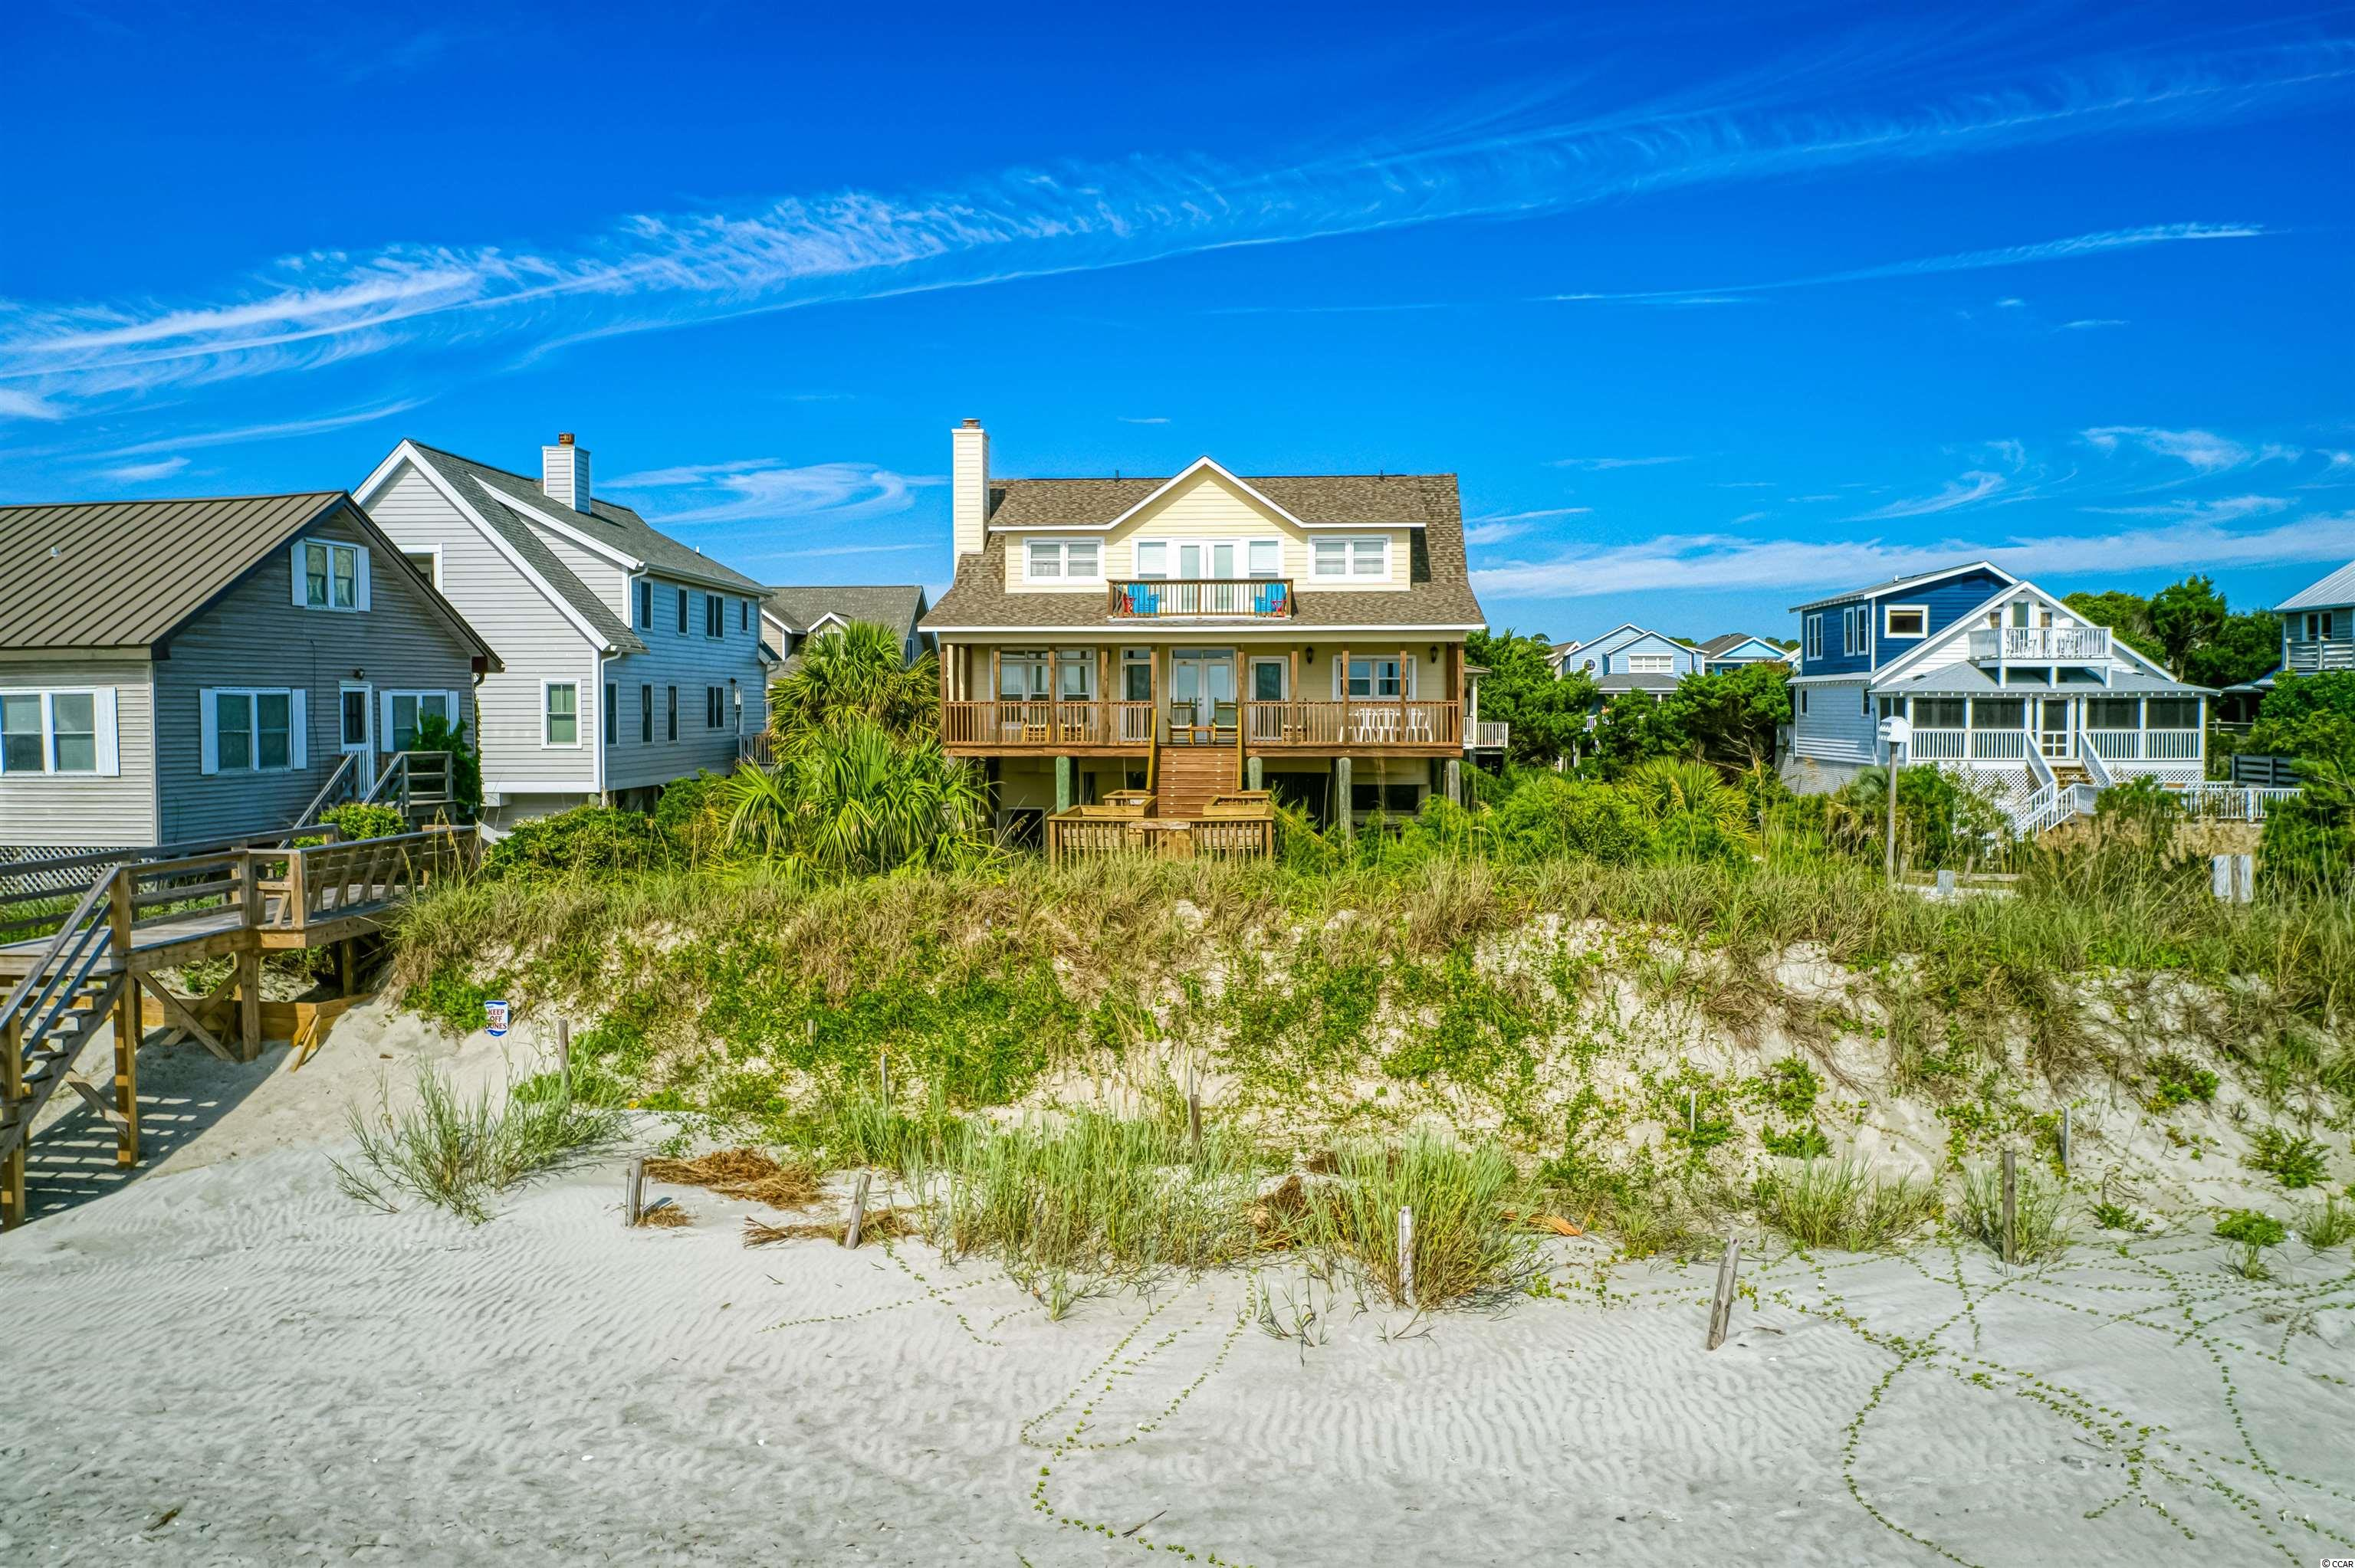 Pawleys at its best! A North end Ocean front one-owner and newer-than-most family retreat. Built after Hugo to new codes, this home has limited rental experience and is located on the great beach at the north of Pawleys protected by high dunes. Enjoy the home's comfortable interior and outstanding ocean views. A large 41-foot-long front porch for big gatherings greets you and leads you into the open front area of the home's living and dining and kitchen spaces.  This area has beautiful knotty pine walls and large pine plank flooring recalling the old times of the Island. The kitchen offers a modern breakfast counter arrangement and views of ocean and includes, smooth top stove, a dishwasher, and plenty of storage.  The master bedroom with full bath and a guest bedroom with full bath are located on this main floor.  Upstairs the view is the best, with a great room with glass doors allowing walkout to beach side balcony. A perfect place to relax or host friends. Fill it with games and activities on rainy days or open to the ocean and enjoy the Atlantic breezes. To north and south of great room are large bedrooms each with full bath. On the rear of house is a long room used as the 5th bedroom under the eaves. The young at heart will pick this room every time.  Home has great storage underneath and plenty of parking. It offers open and enclosed showers with hot and cold water.  A dry entry stairwell leads to the Kitchen area above. In front is the gathering place on the homes private beach front sitting area. The ideal place for morning coffee and evening cocktails while watching the surf activities.  This ocean front home is move in ready, fully furnished, and available for immediate occupancy. Start your Pawleys Legacy in this fine family ocean front address. But hurry!